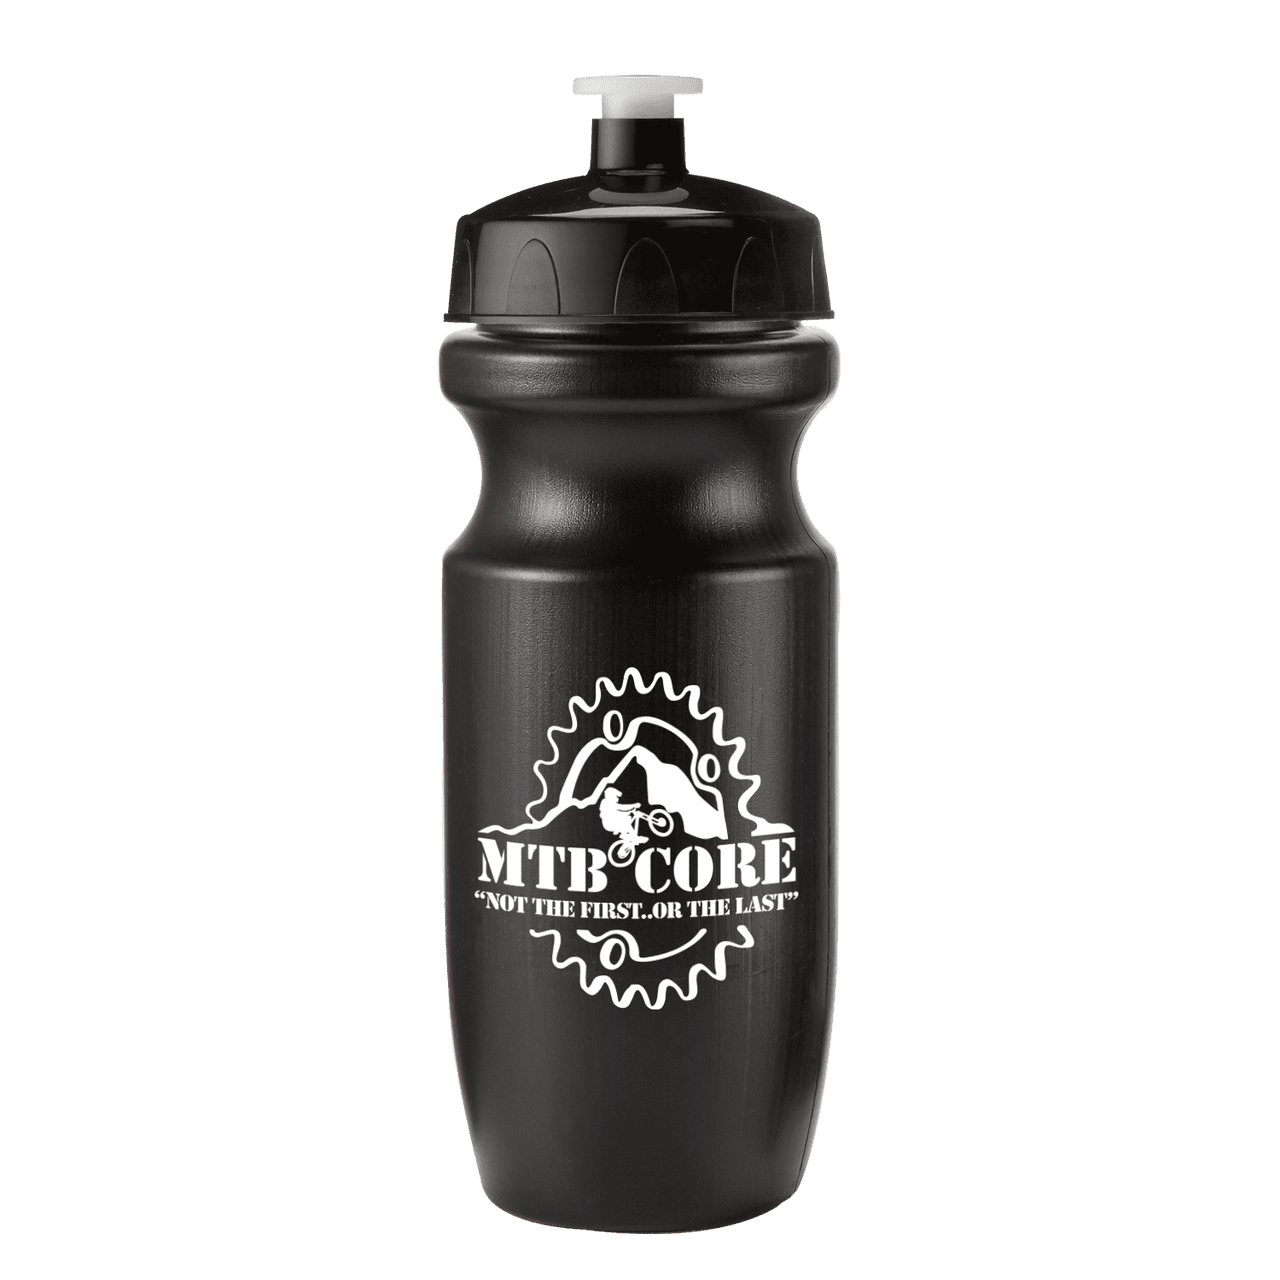 20-oz-bike-bottle-Black-Oasispromos